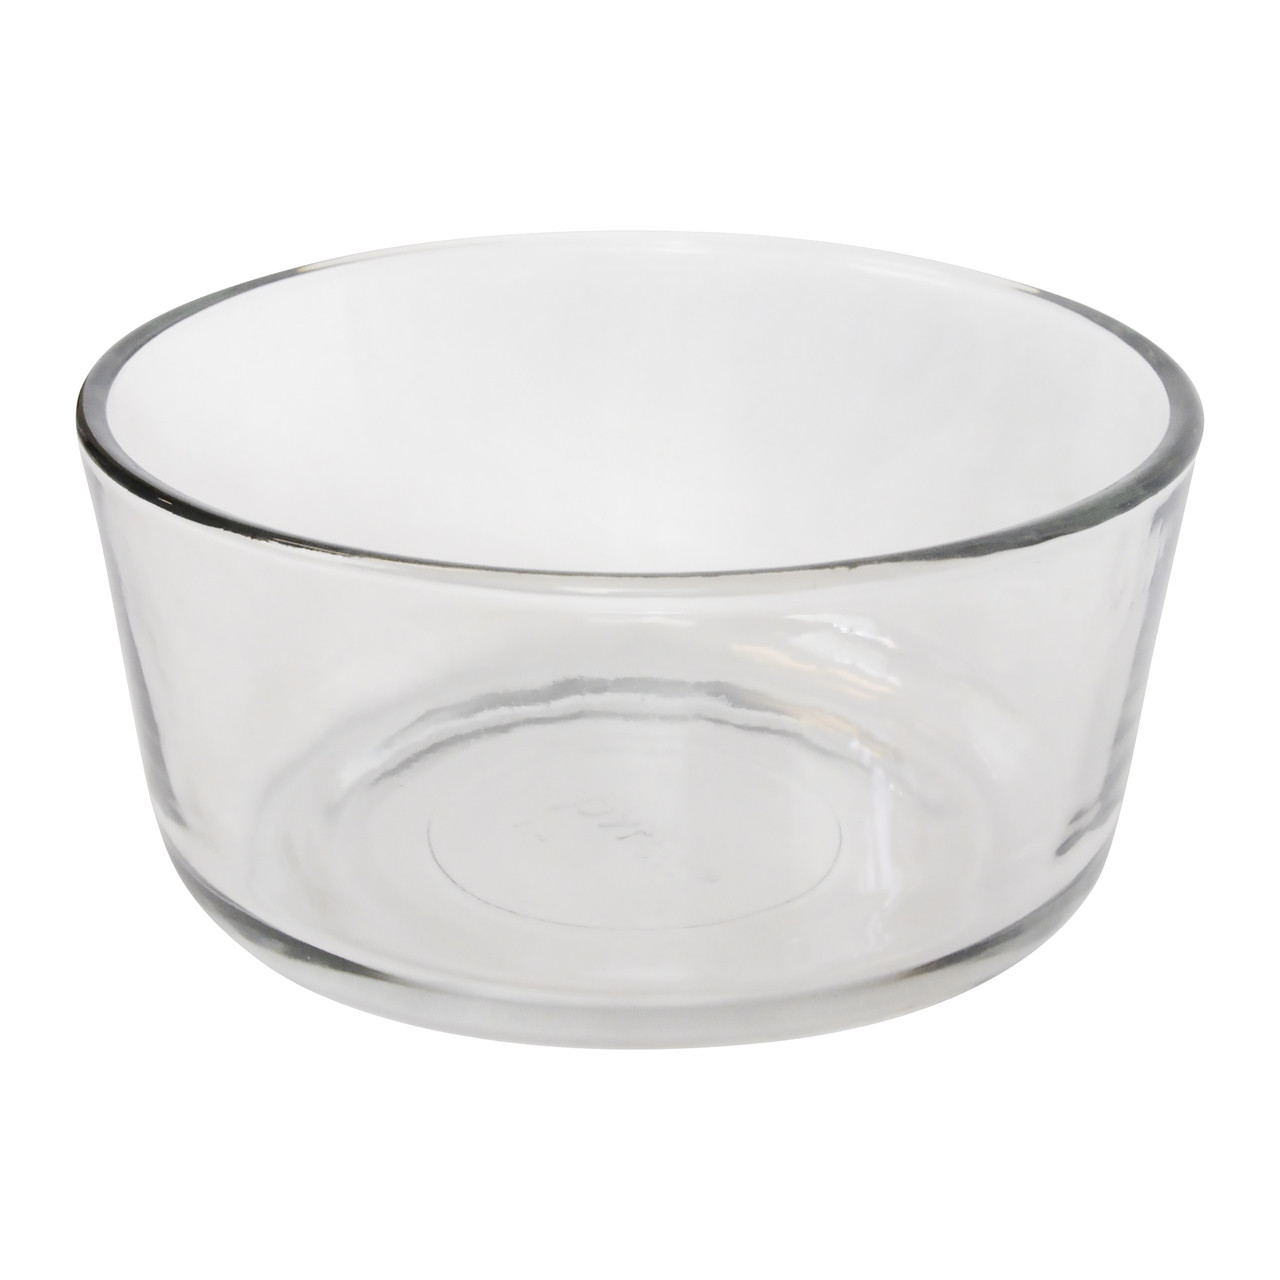 Pyrex 7201 4-Cup Storage Bowl | Helton Tool & Home